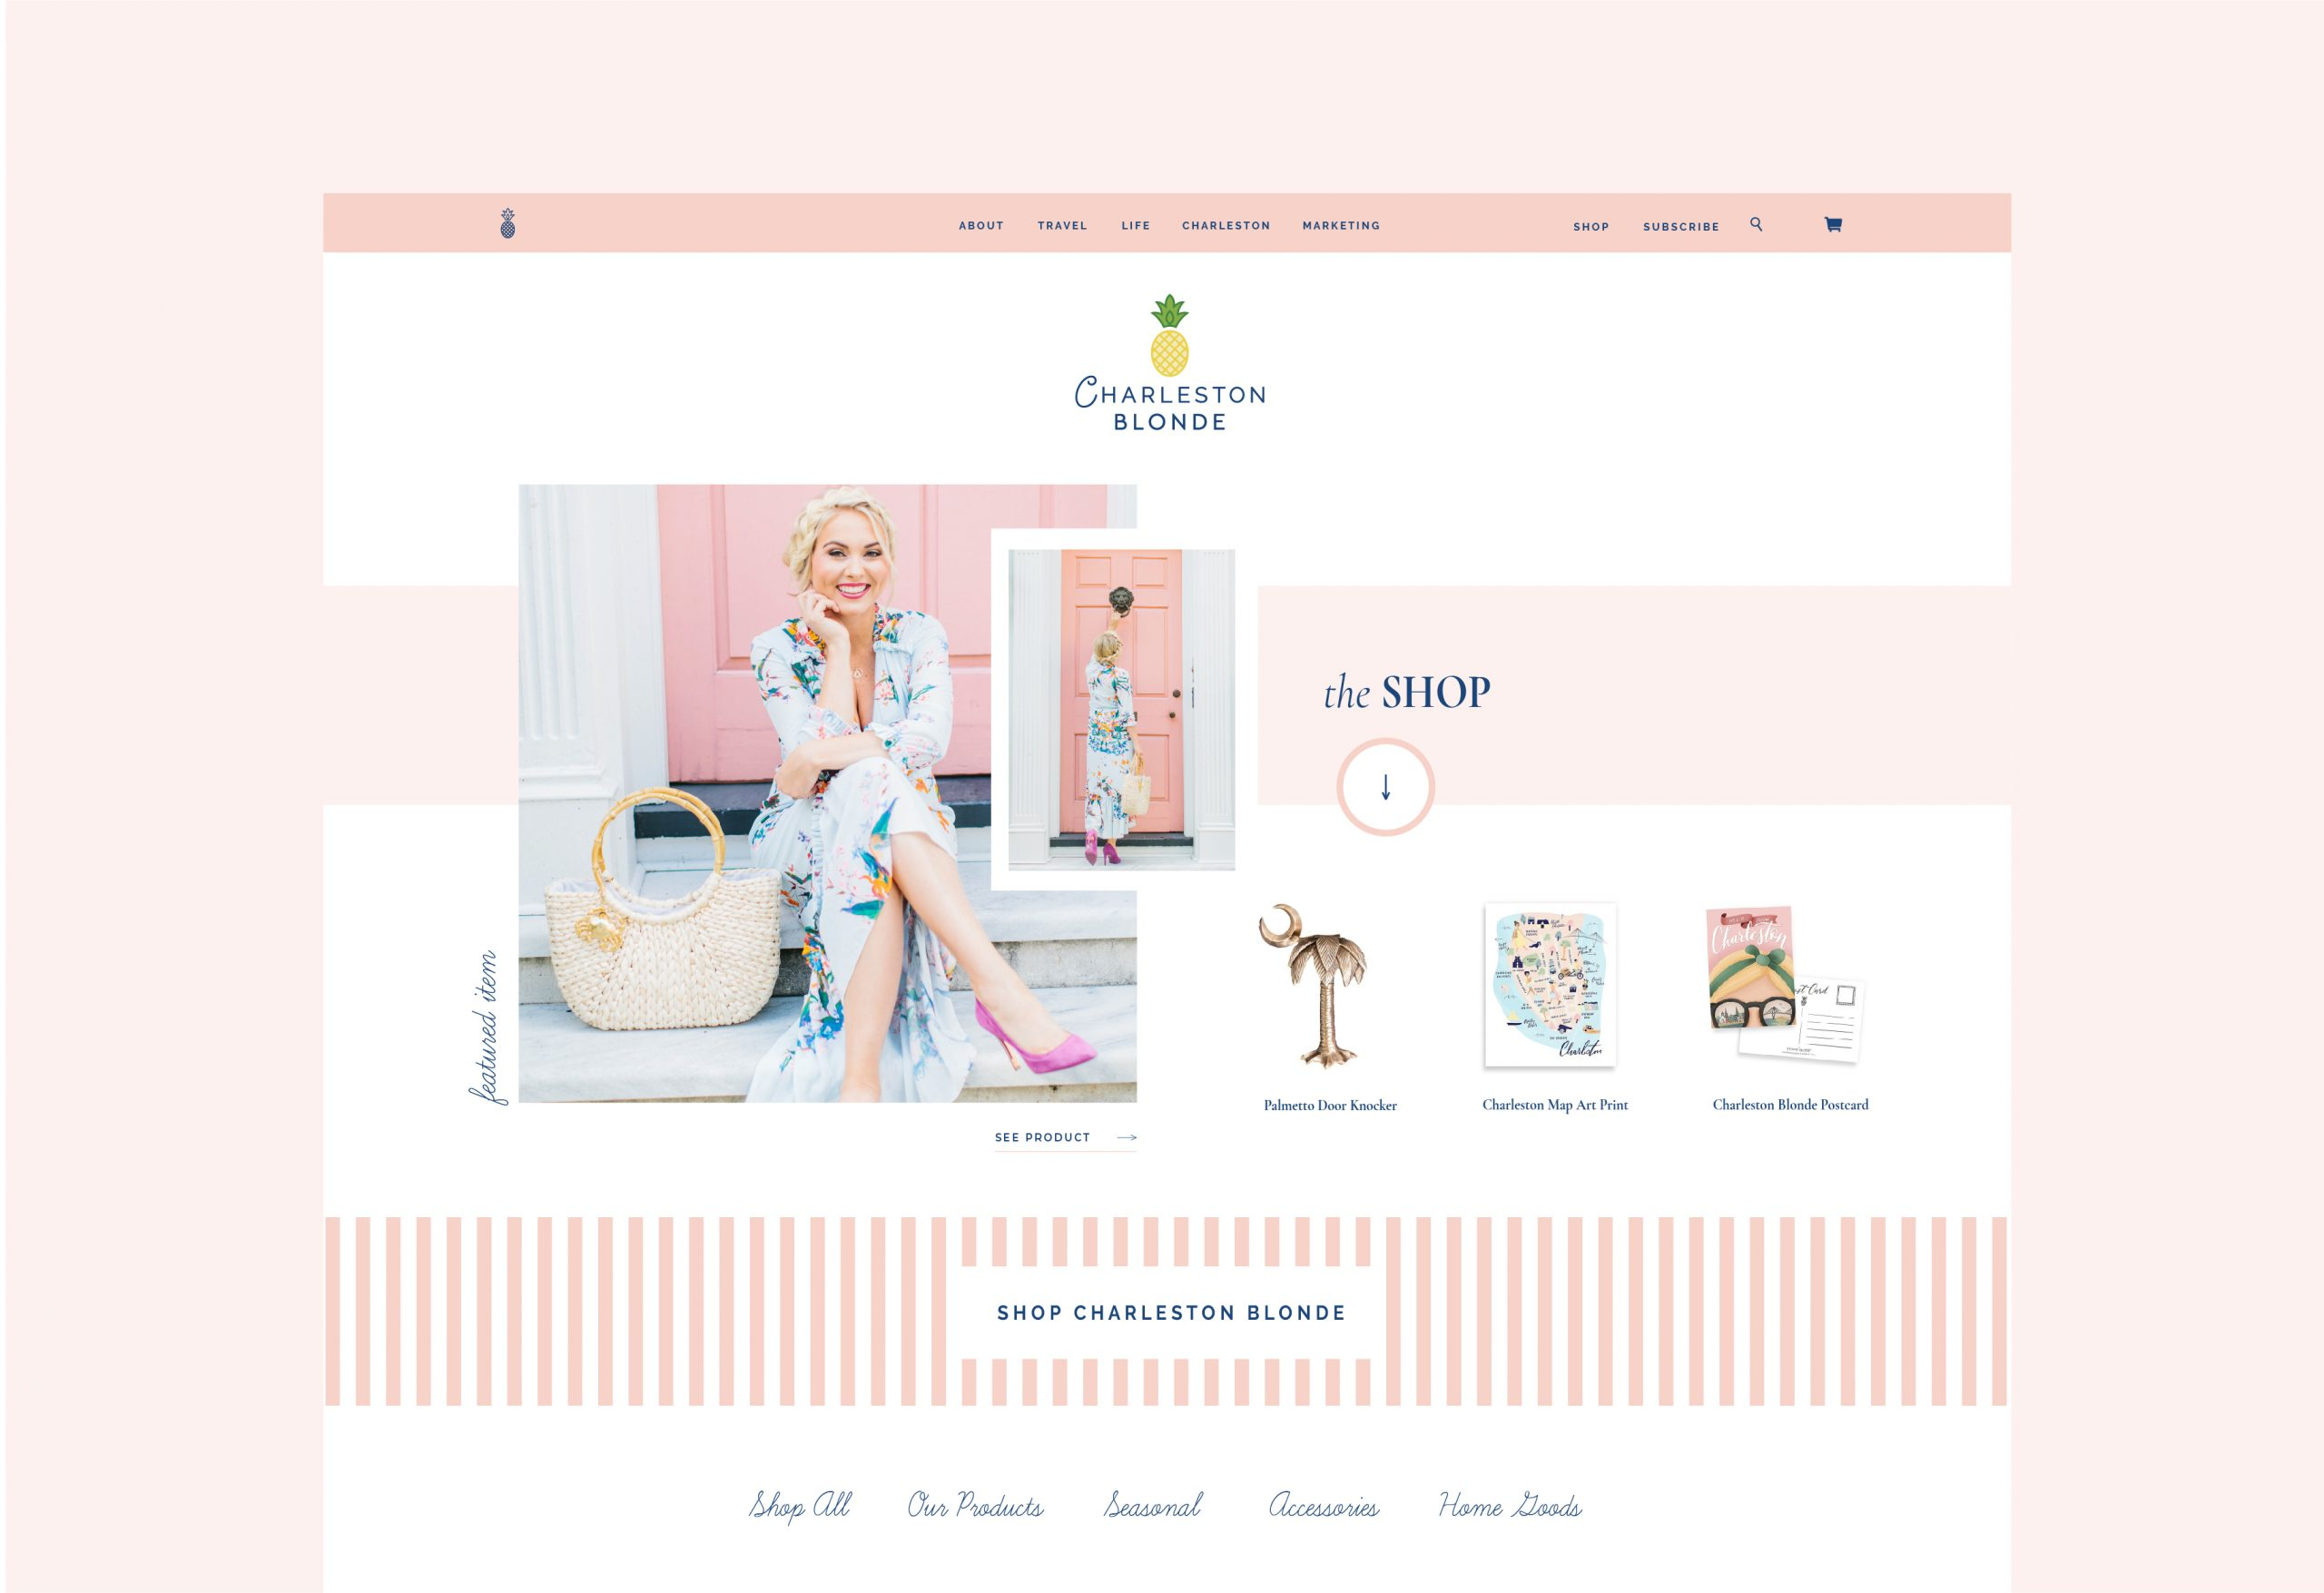 Charleston Blonde Blog Design by Studio 9 Co